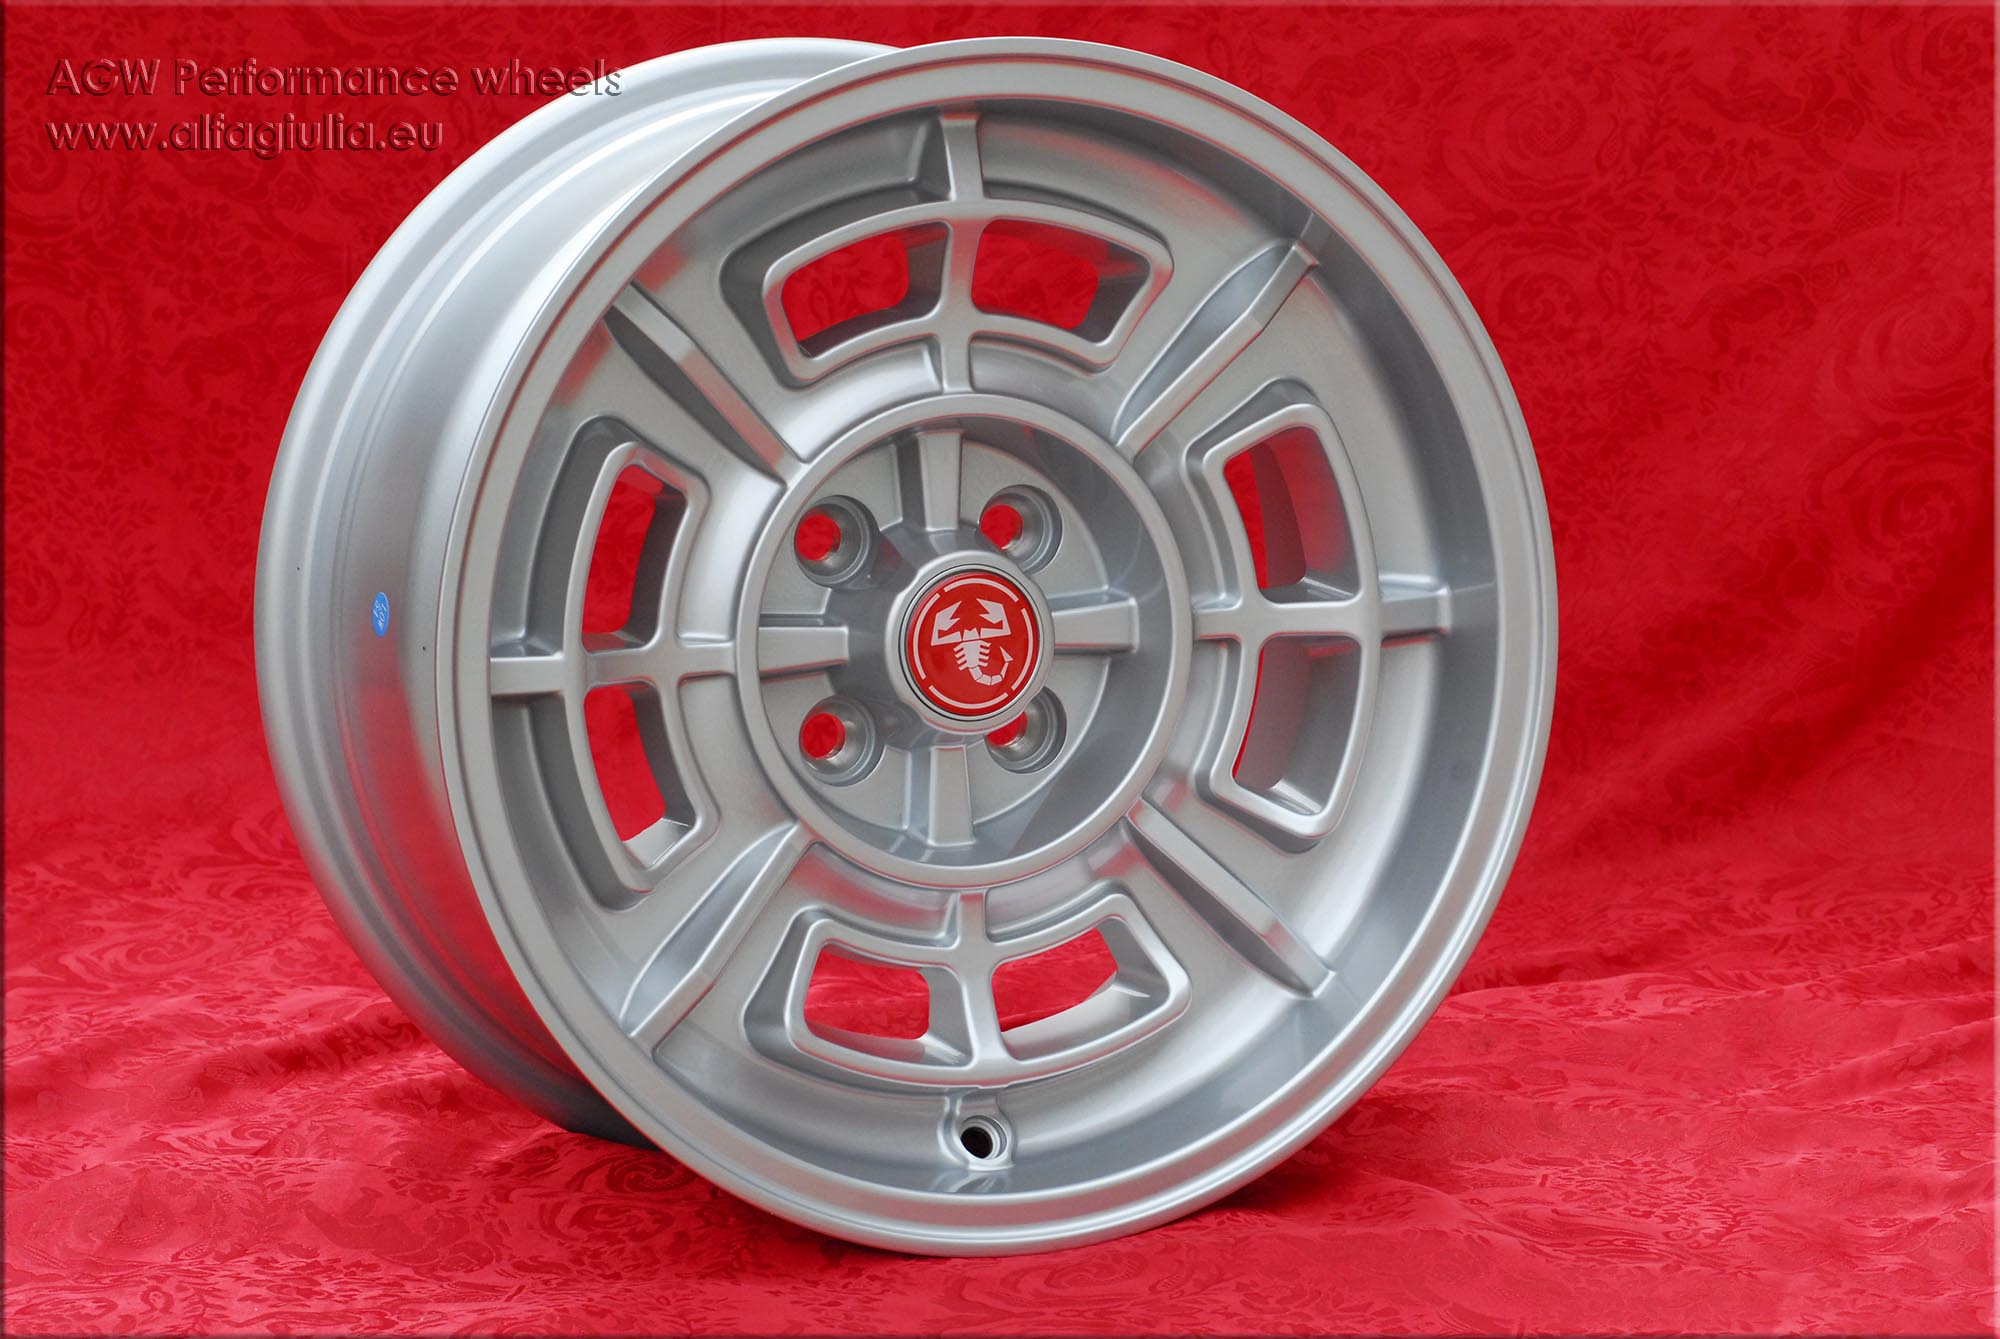 Fiat Cromodora CD80 Fiat 124 125 131 X1/9 Spider  7x15 ET0 4x98 c/b 58.6 mm Wheel